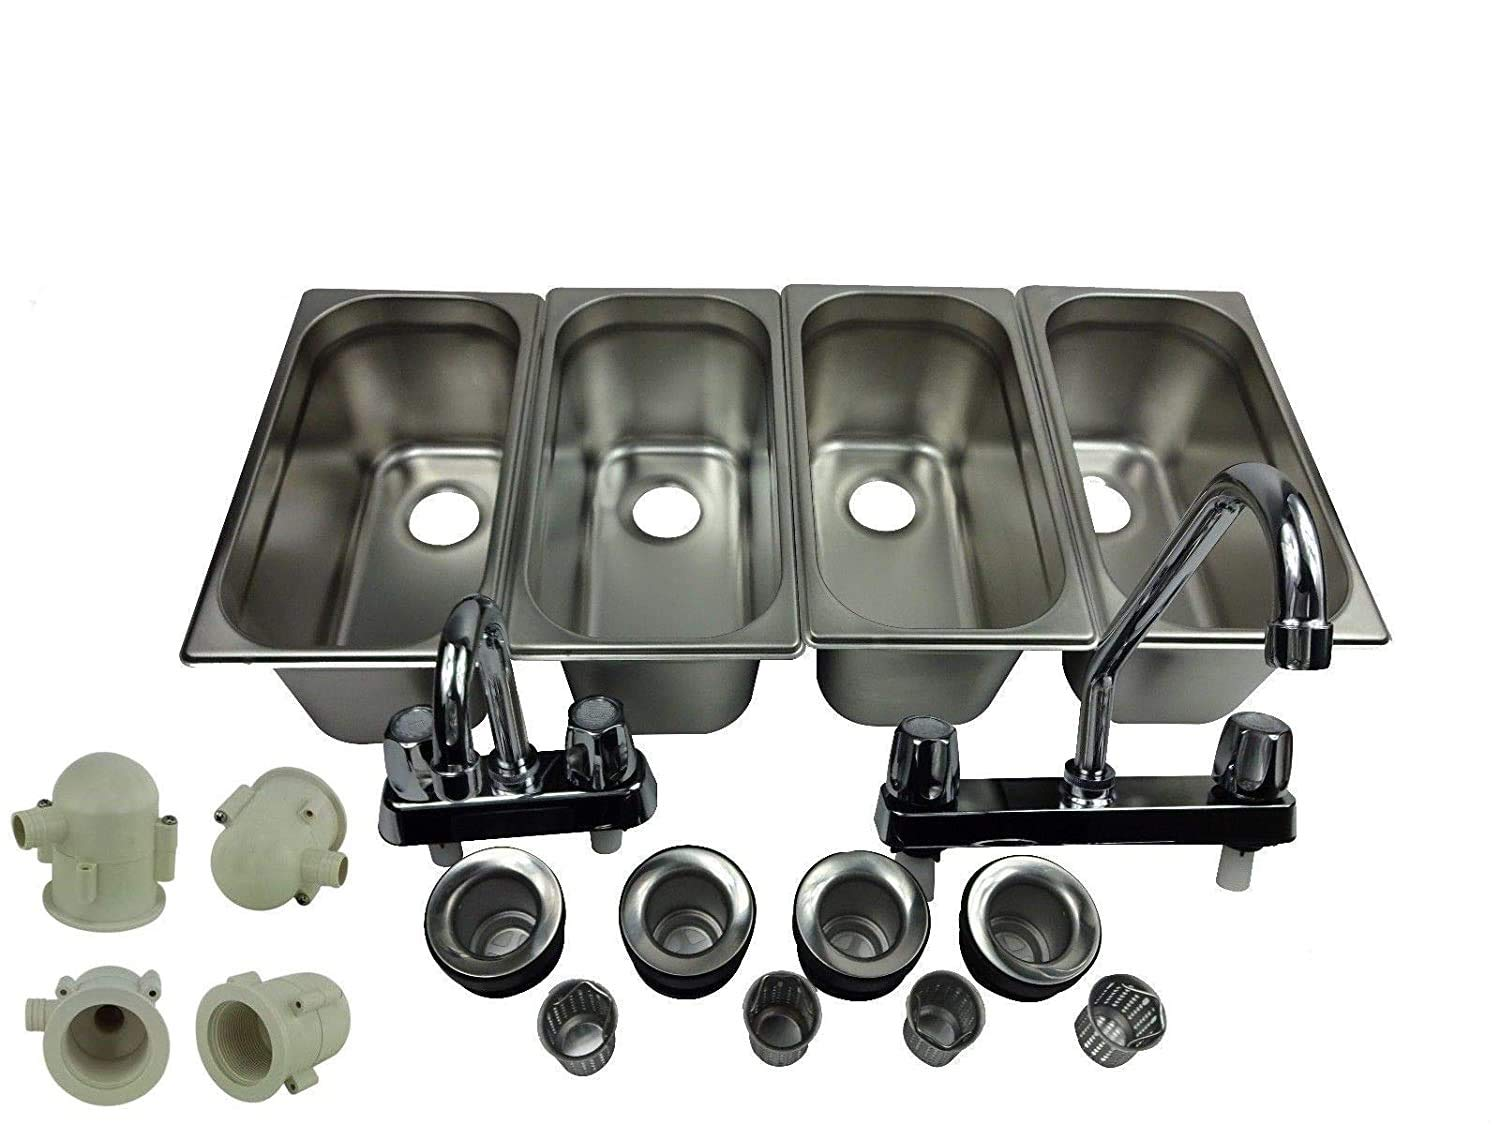 4 Compartment Concession Sink Portable 4 Traps HandWashing Food Truck Trailer